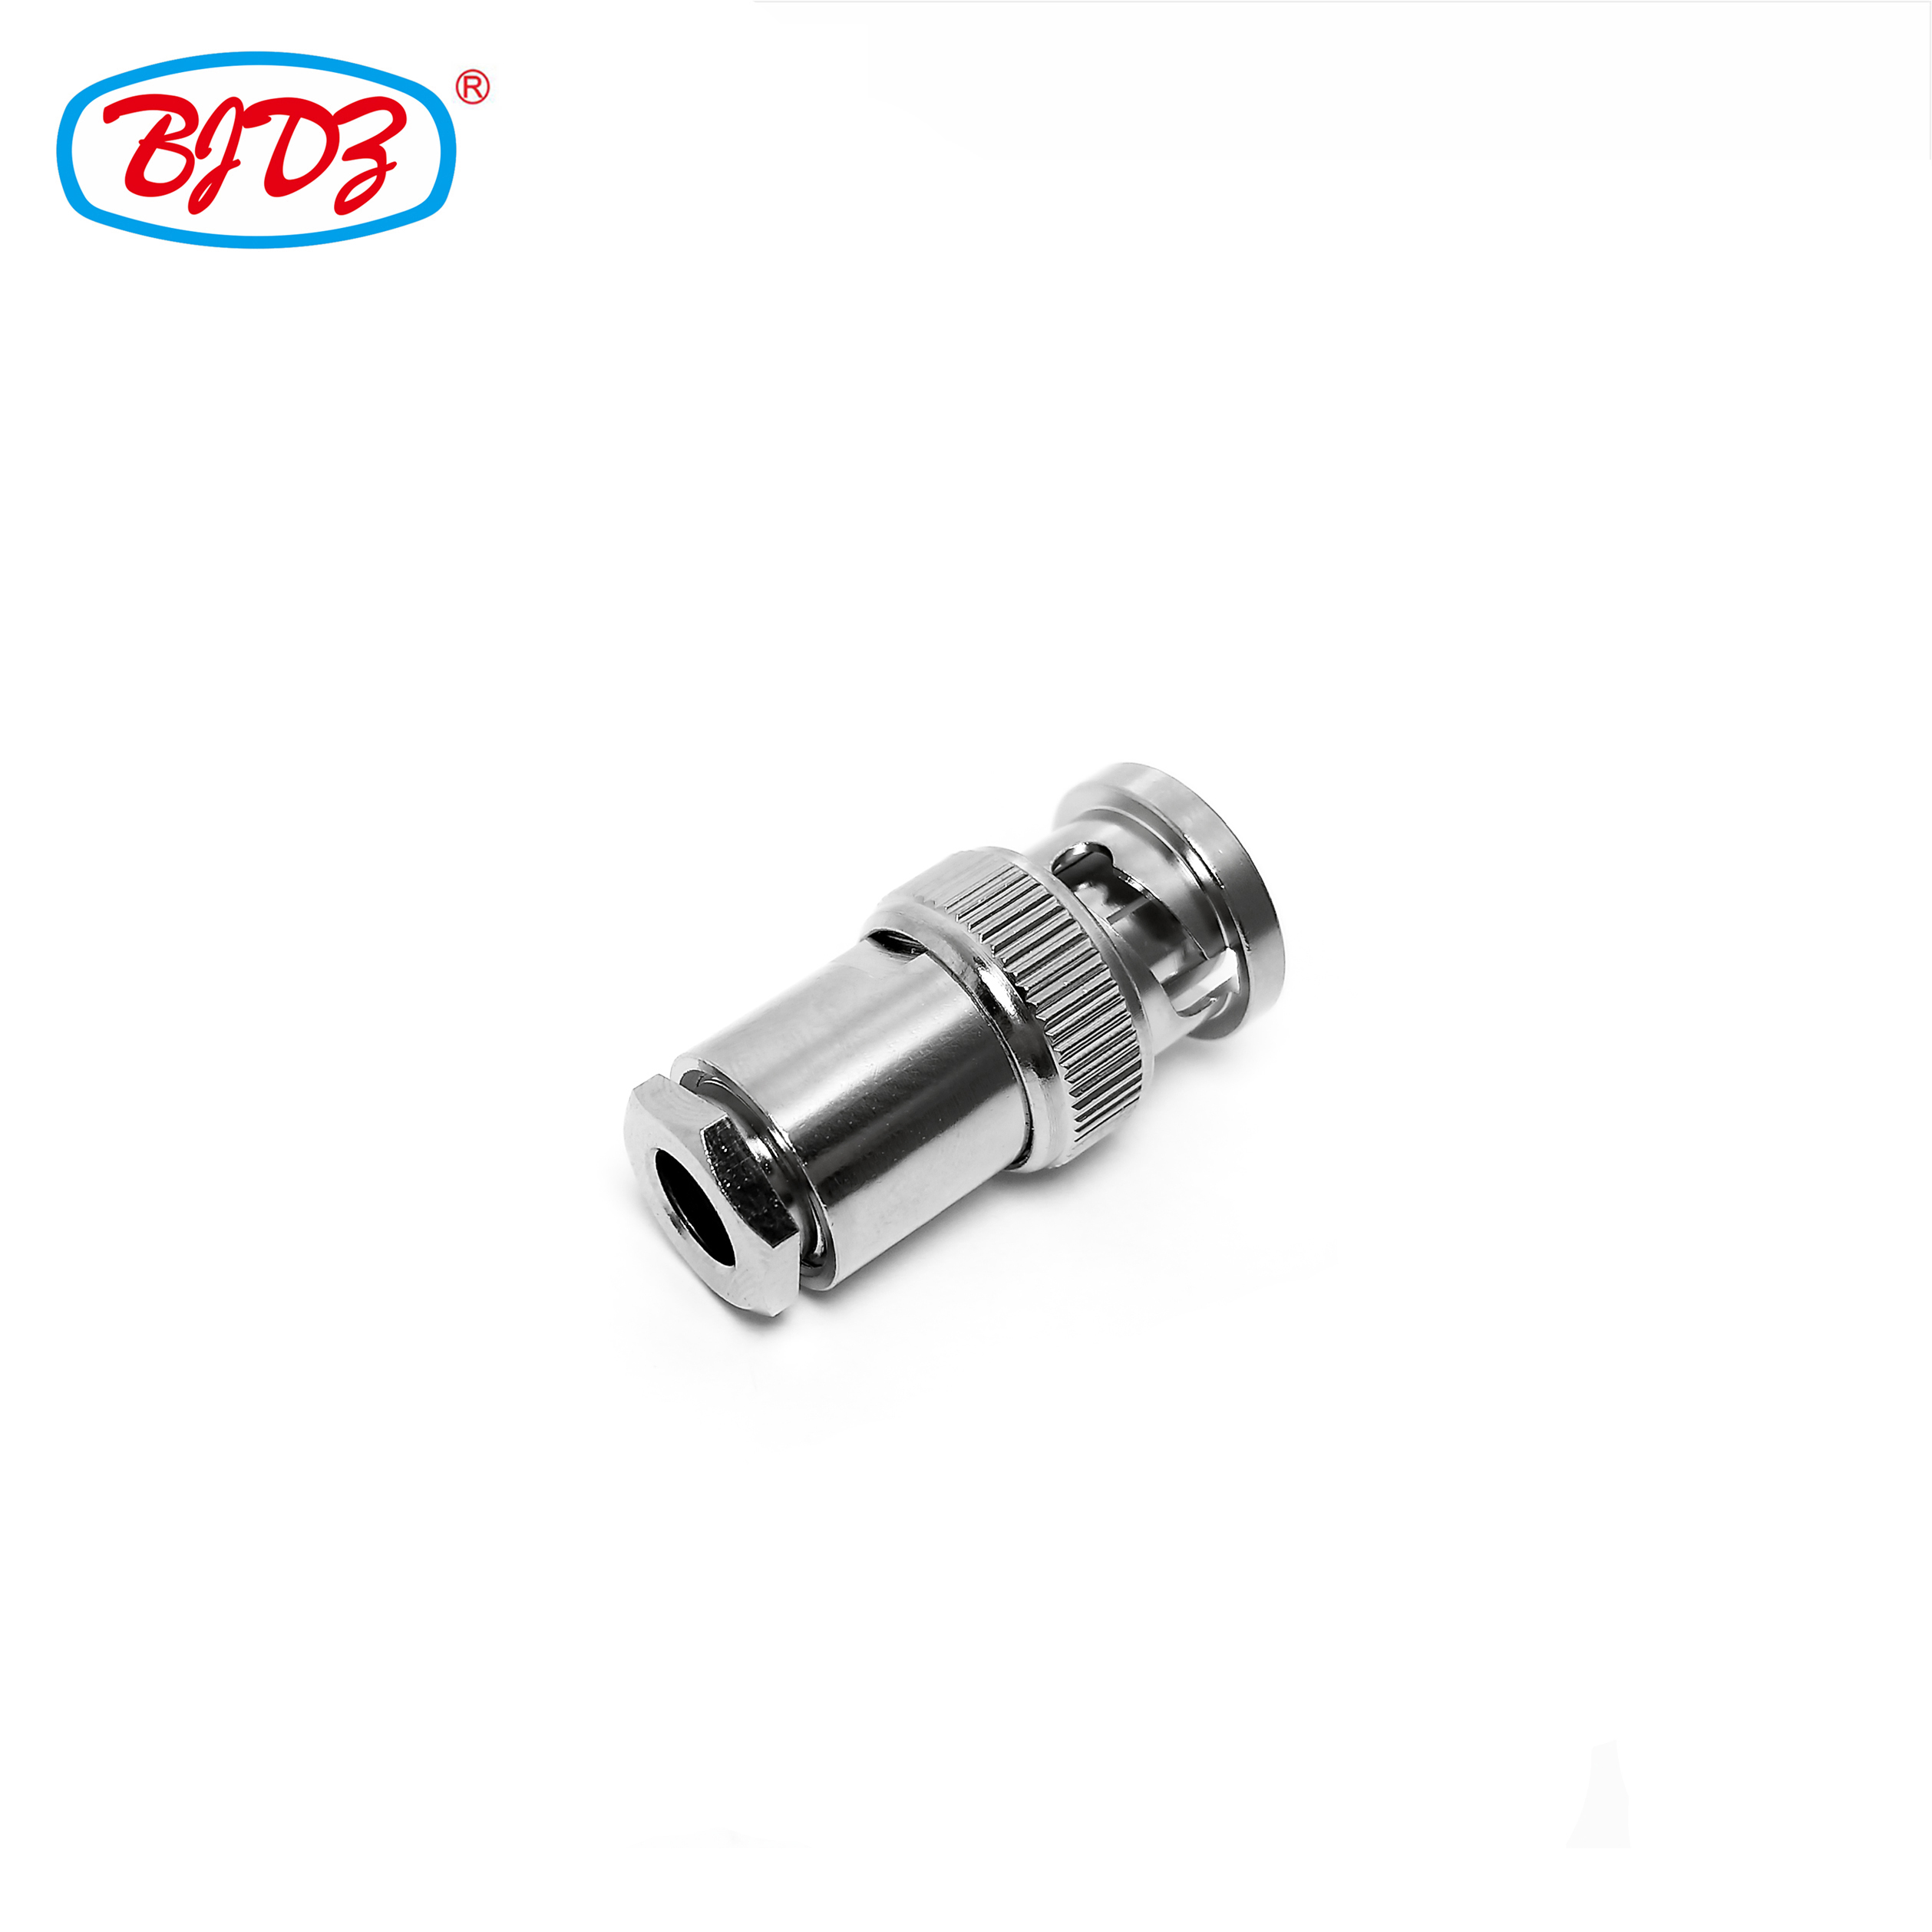 RF coaxial cable connector BNC male plug straight clamp wire connector pole no. RG58